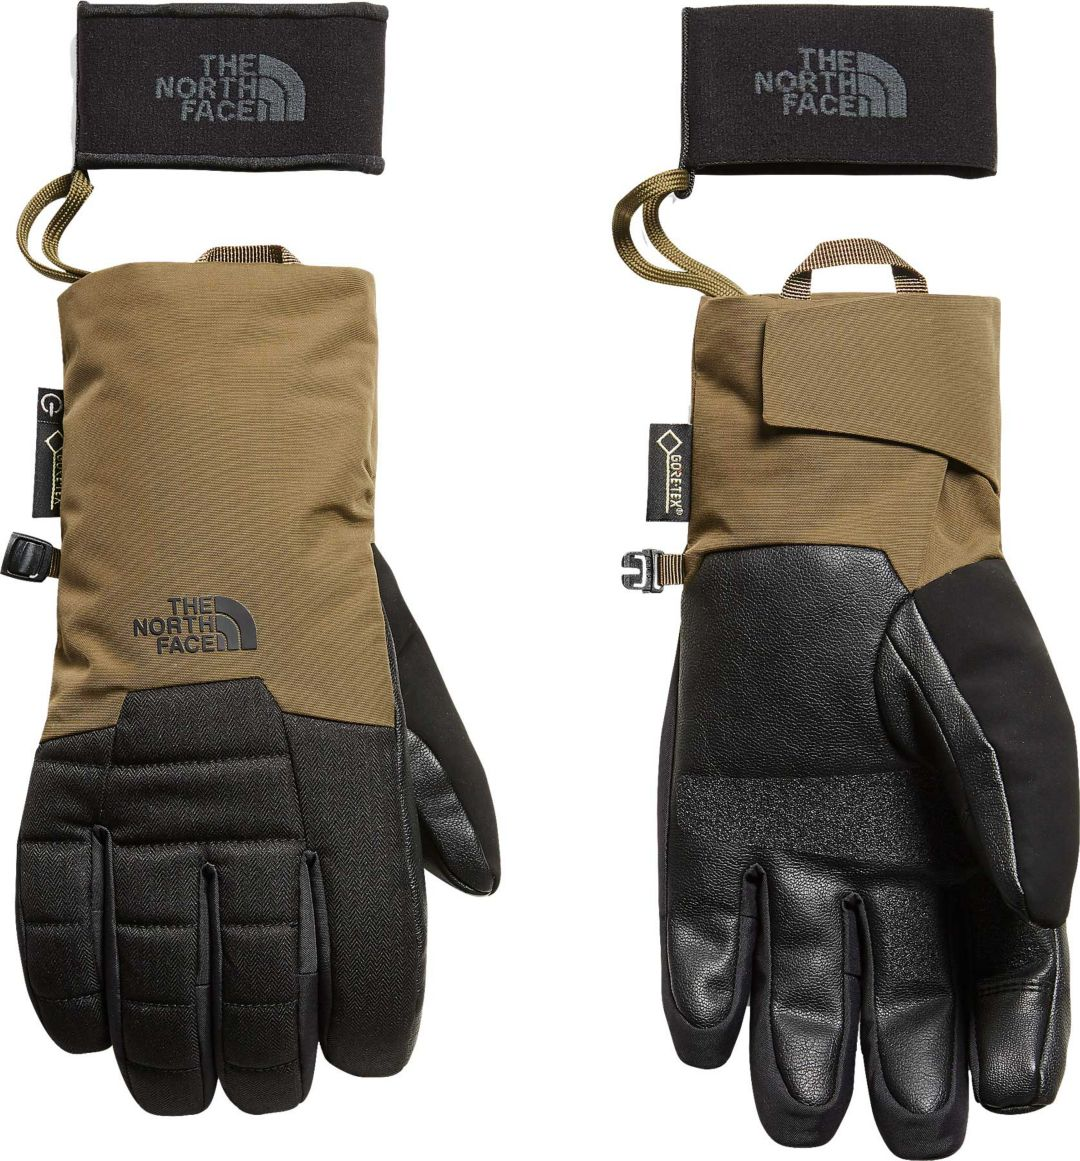 c92a92f7a The North Face Men's Montana GORE-TEX SG Gloves